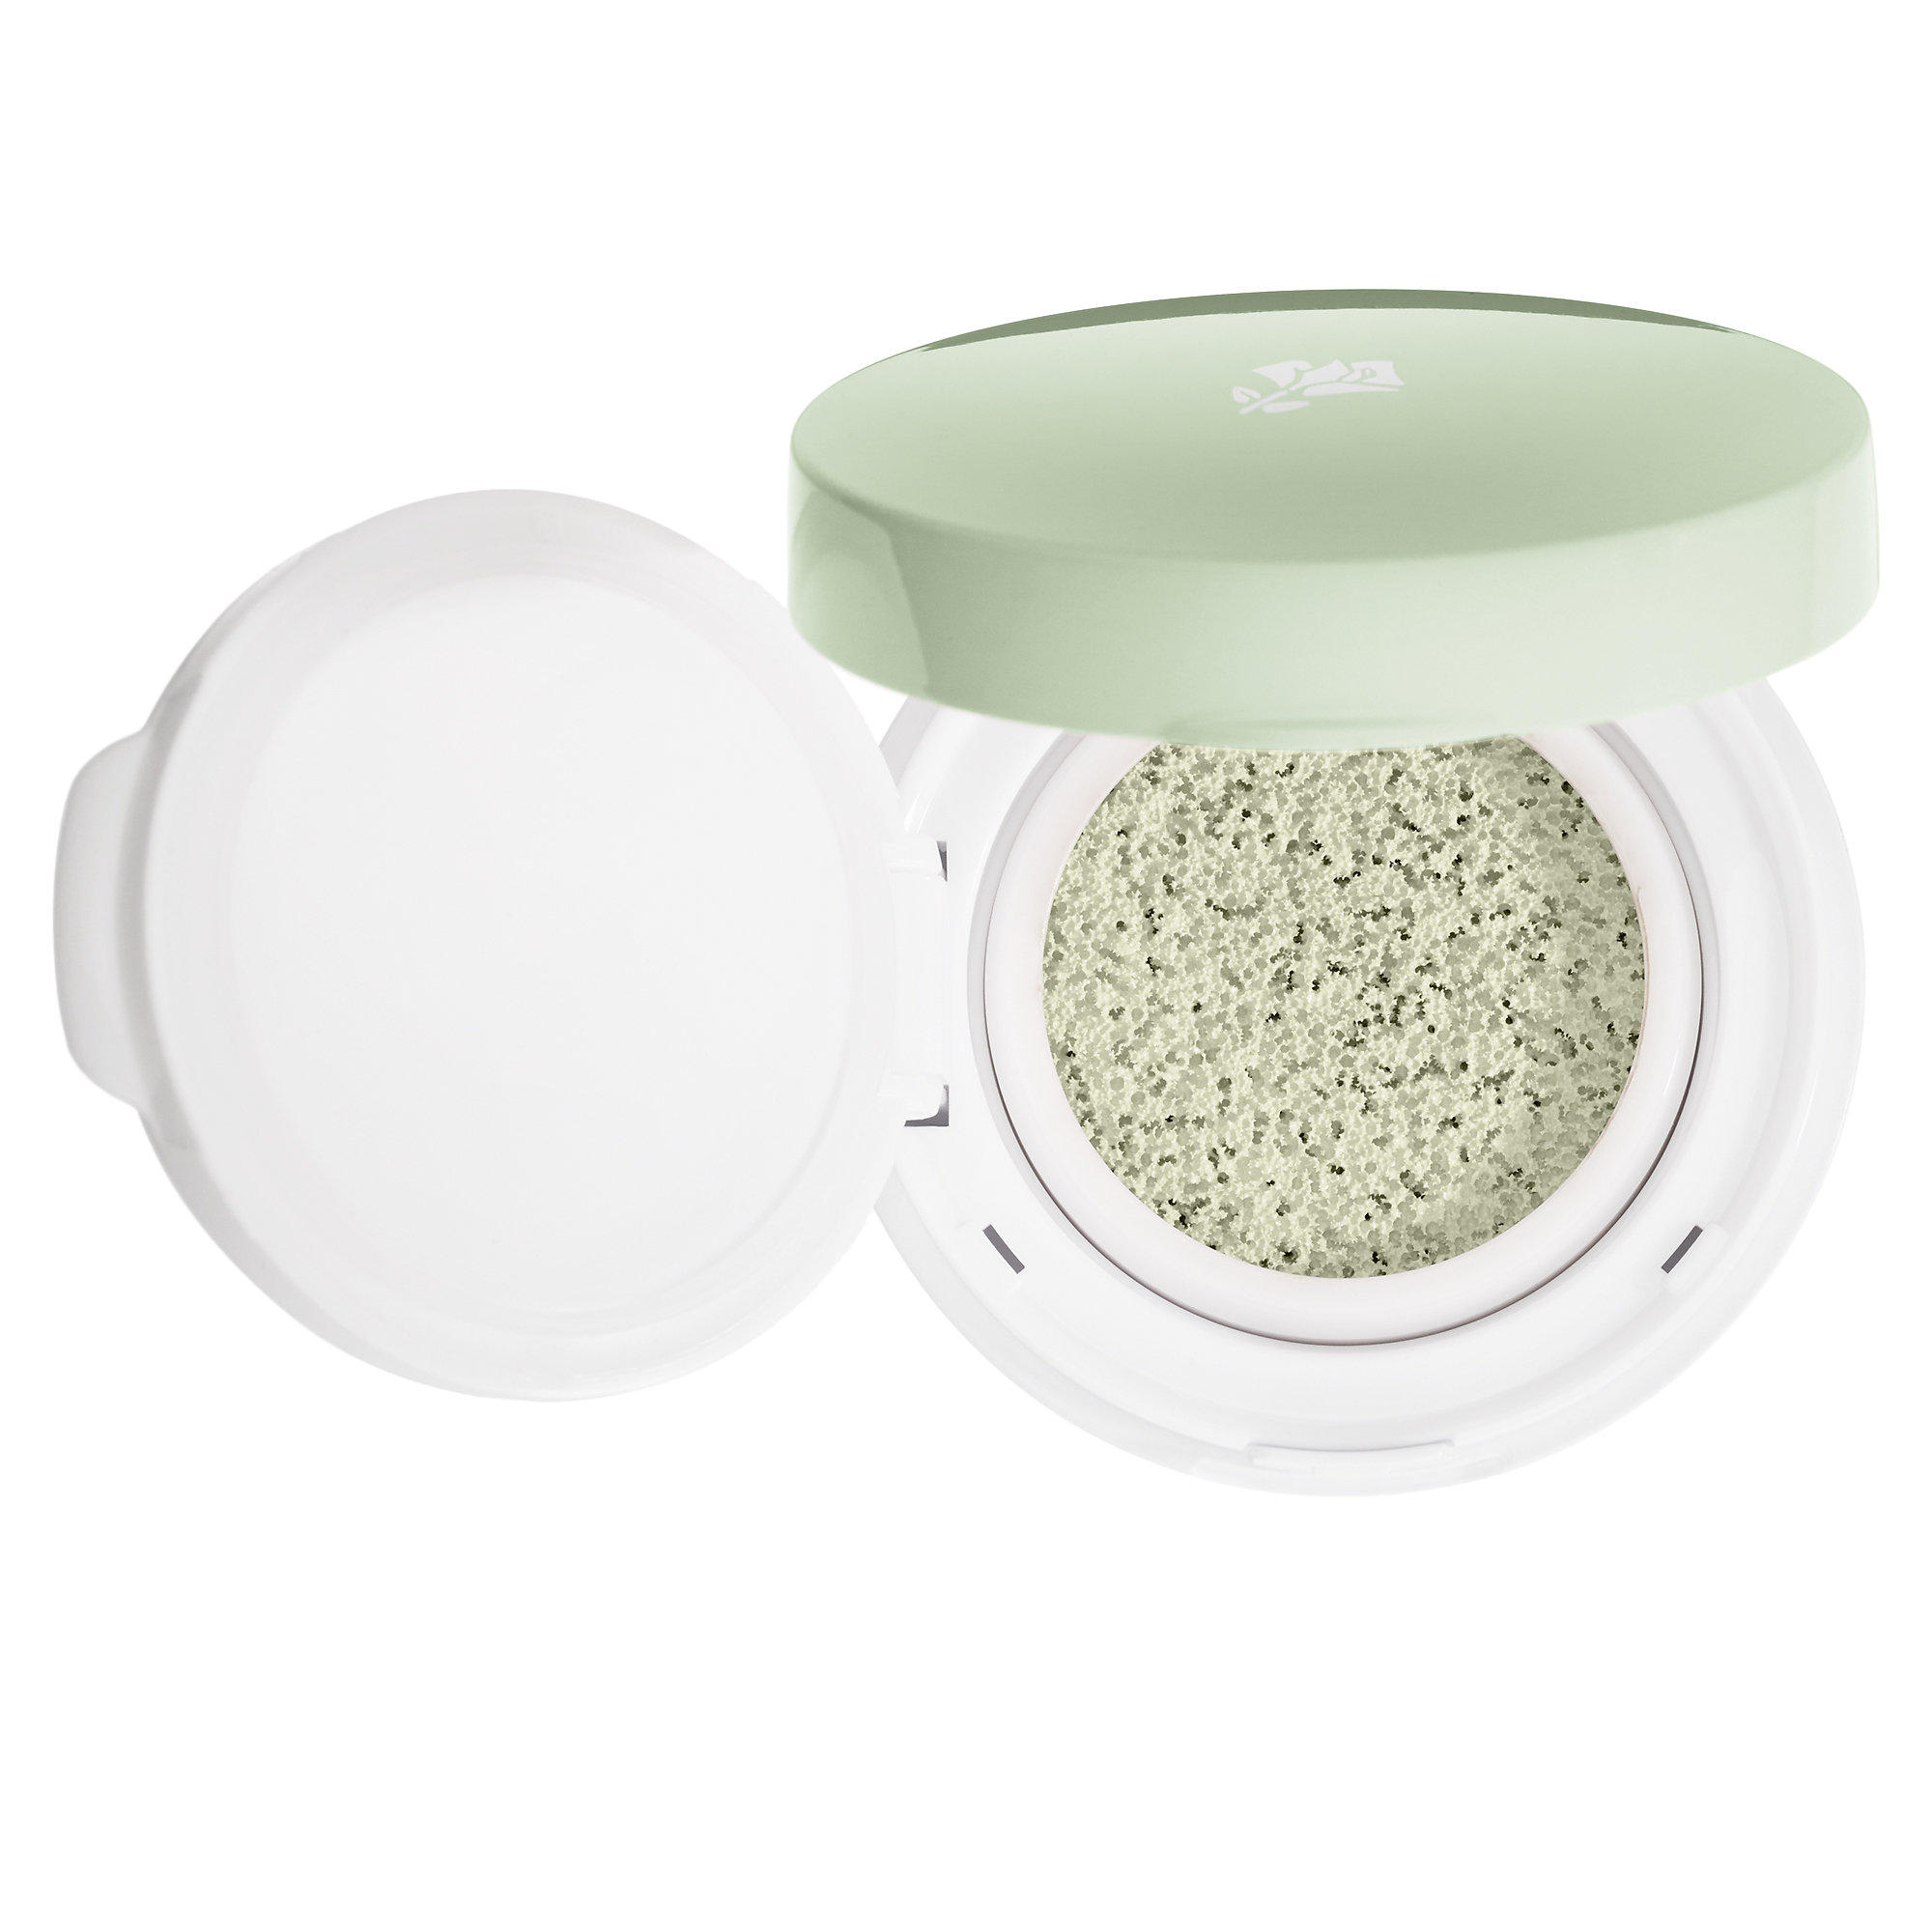 New Release Lancome launched new Miracle CC Cushion - Color Correcting Primer